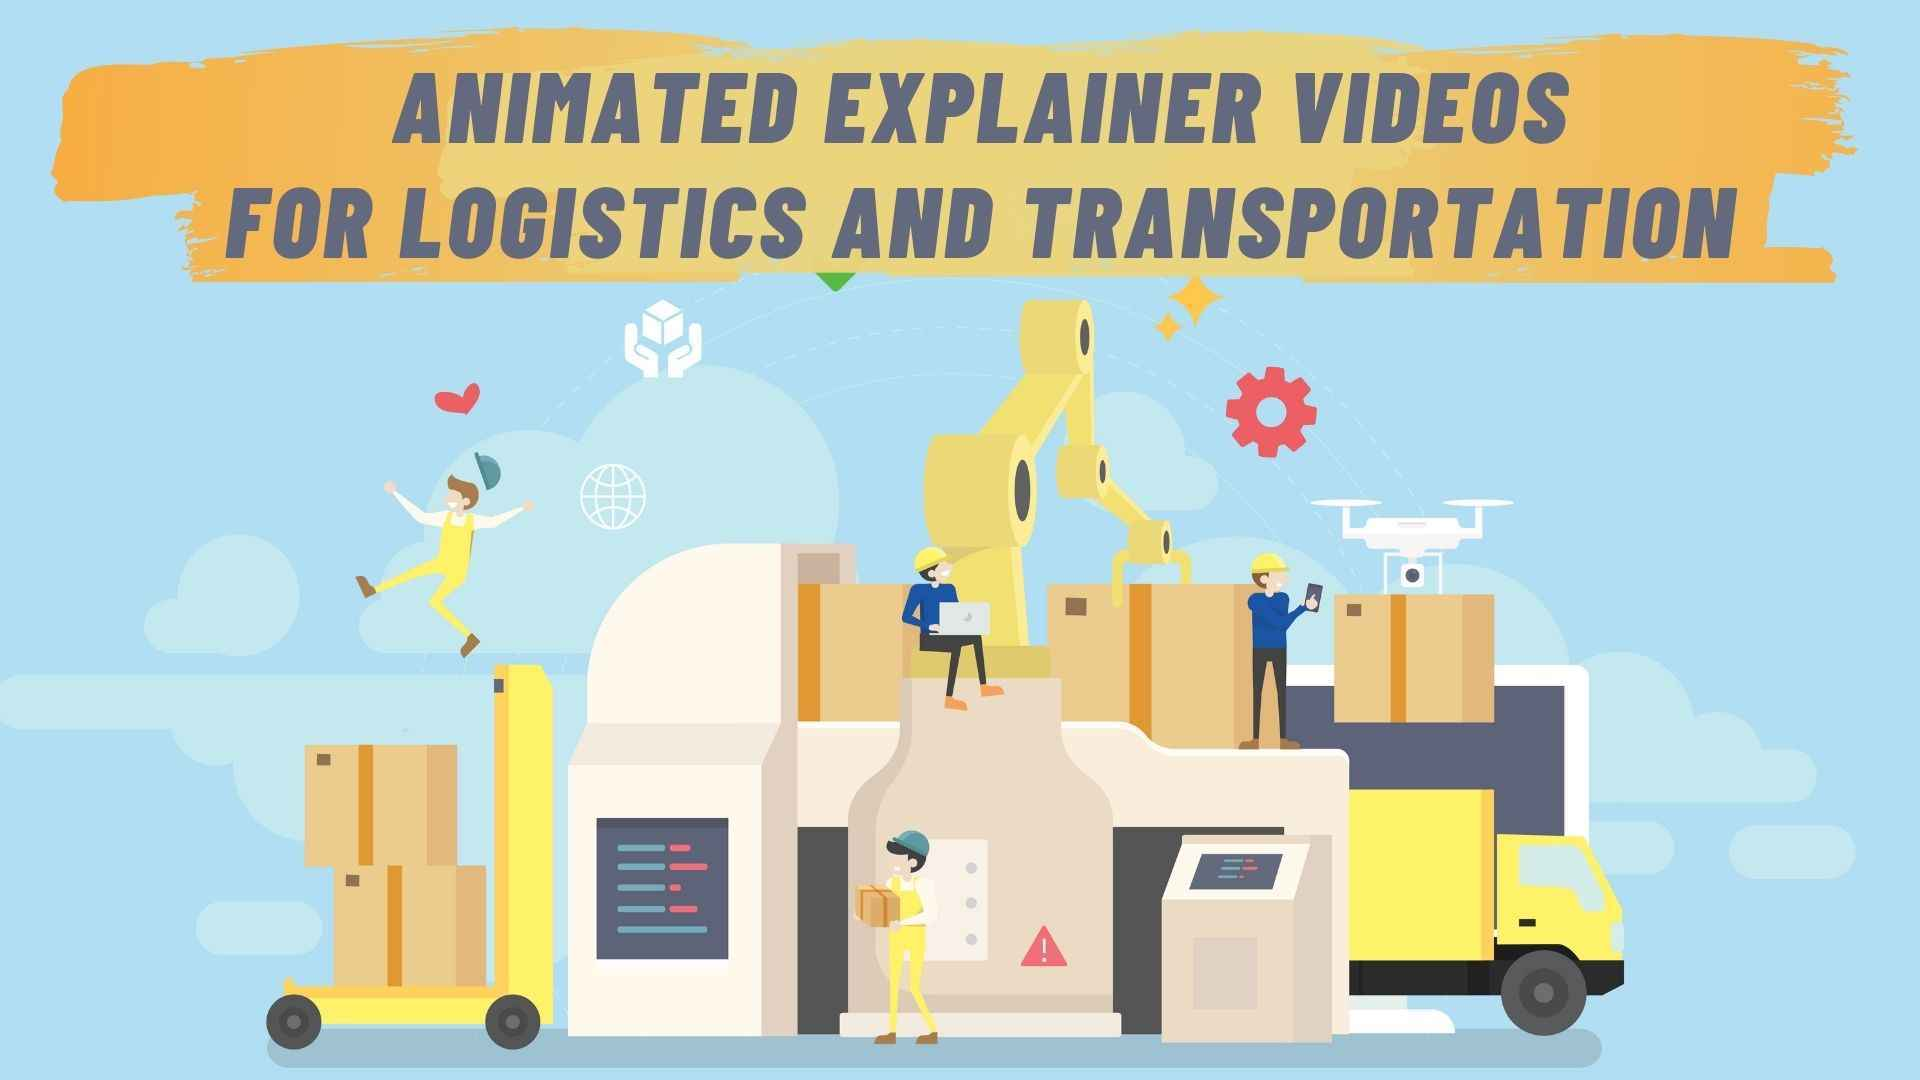 Animated explainer videos for Logistics and Transportation